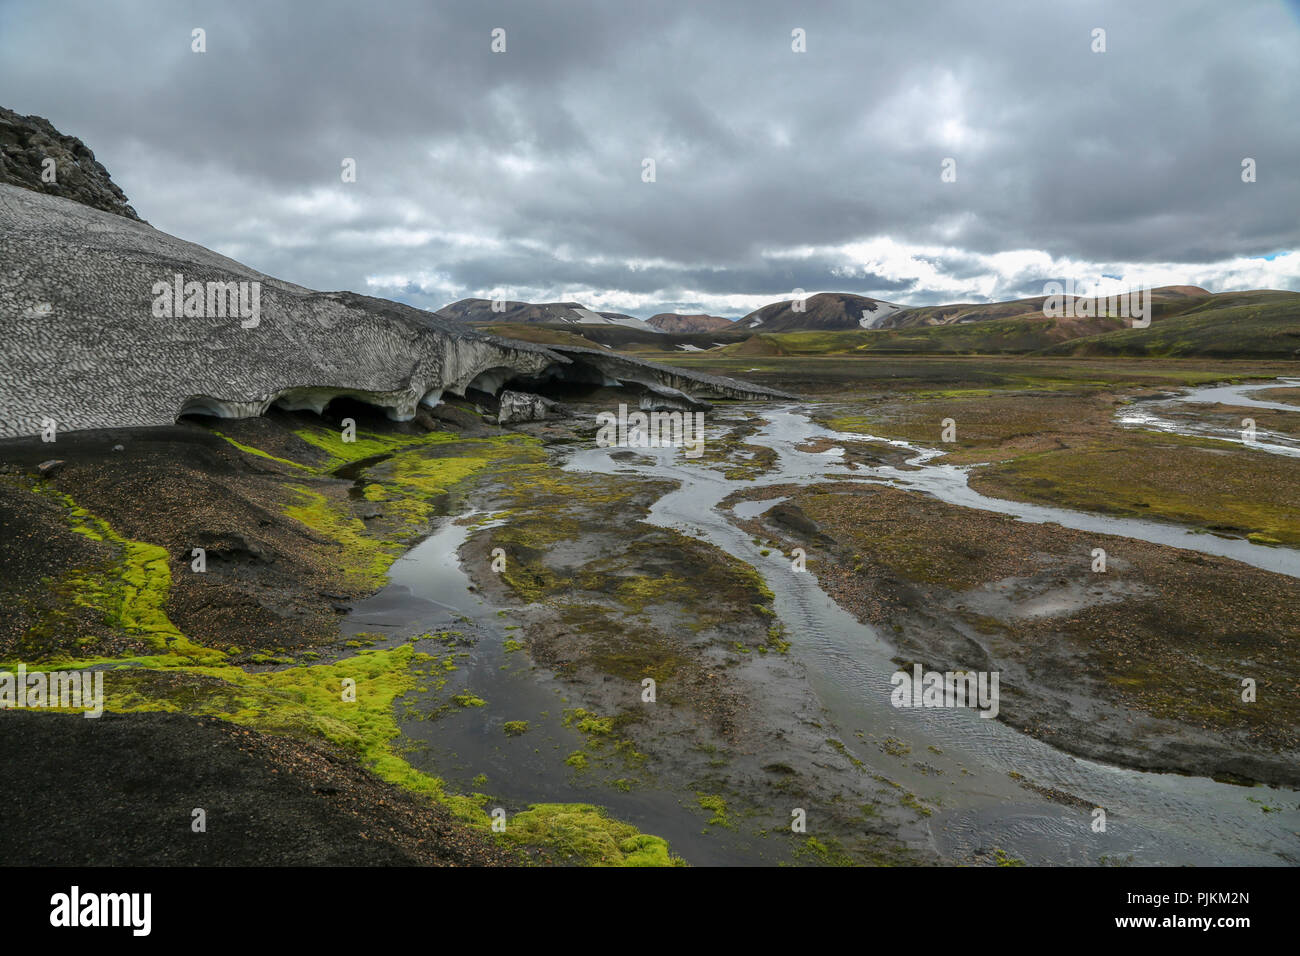 Iceland, Fjallabak, snow field, old snow, covered with volcanic ash, green moss, in summer, melt water, dark clouds - Stock Image